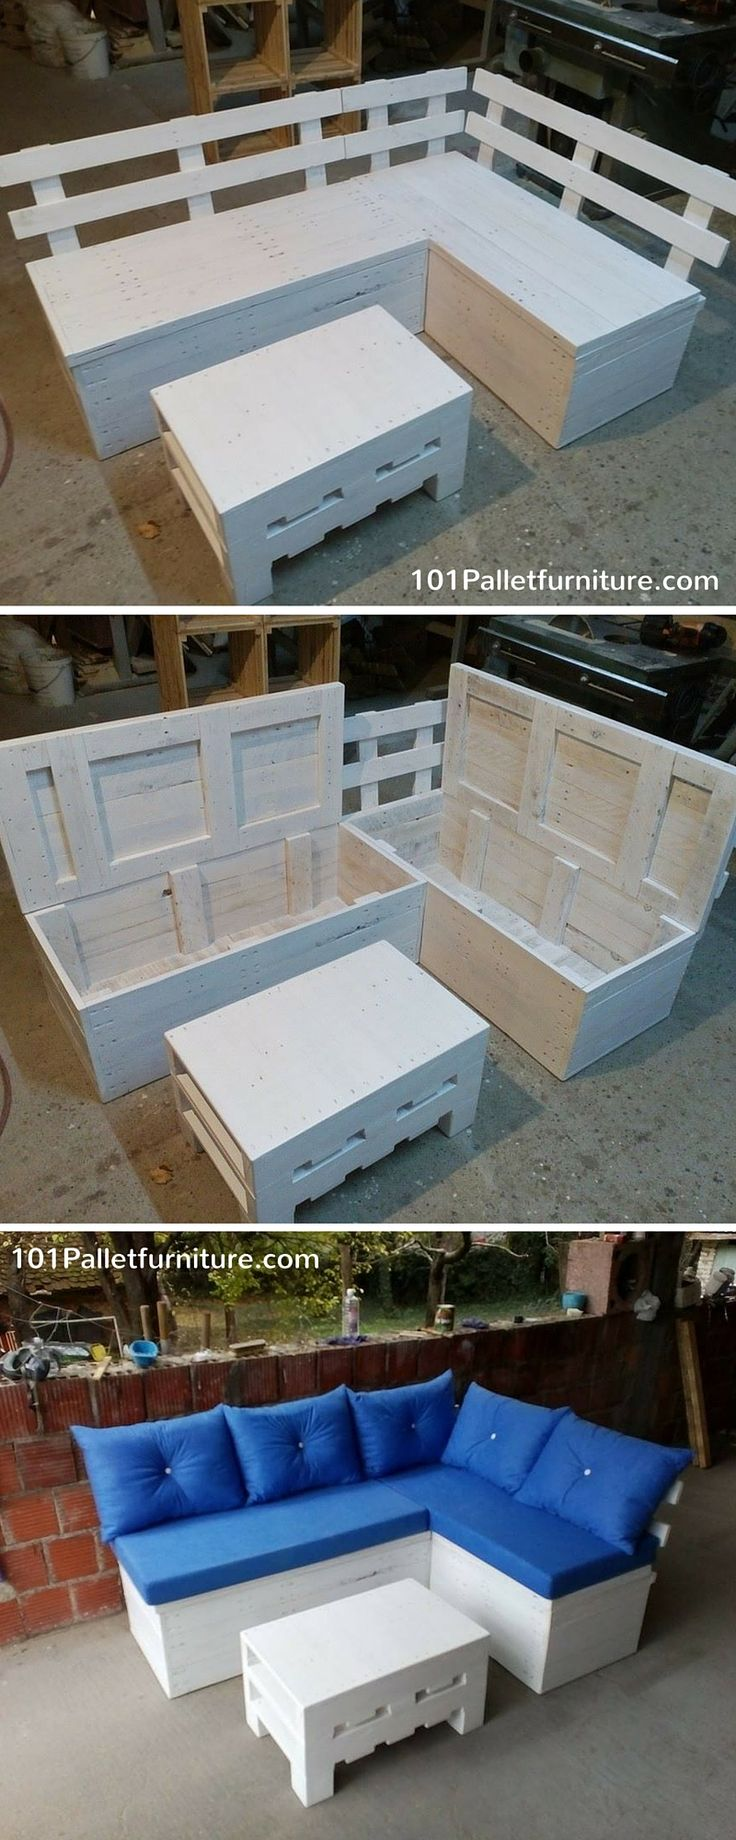 Pallet Sectional Sofa with Additional Storage Space - 101 Pallet Furniture